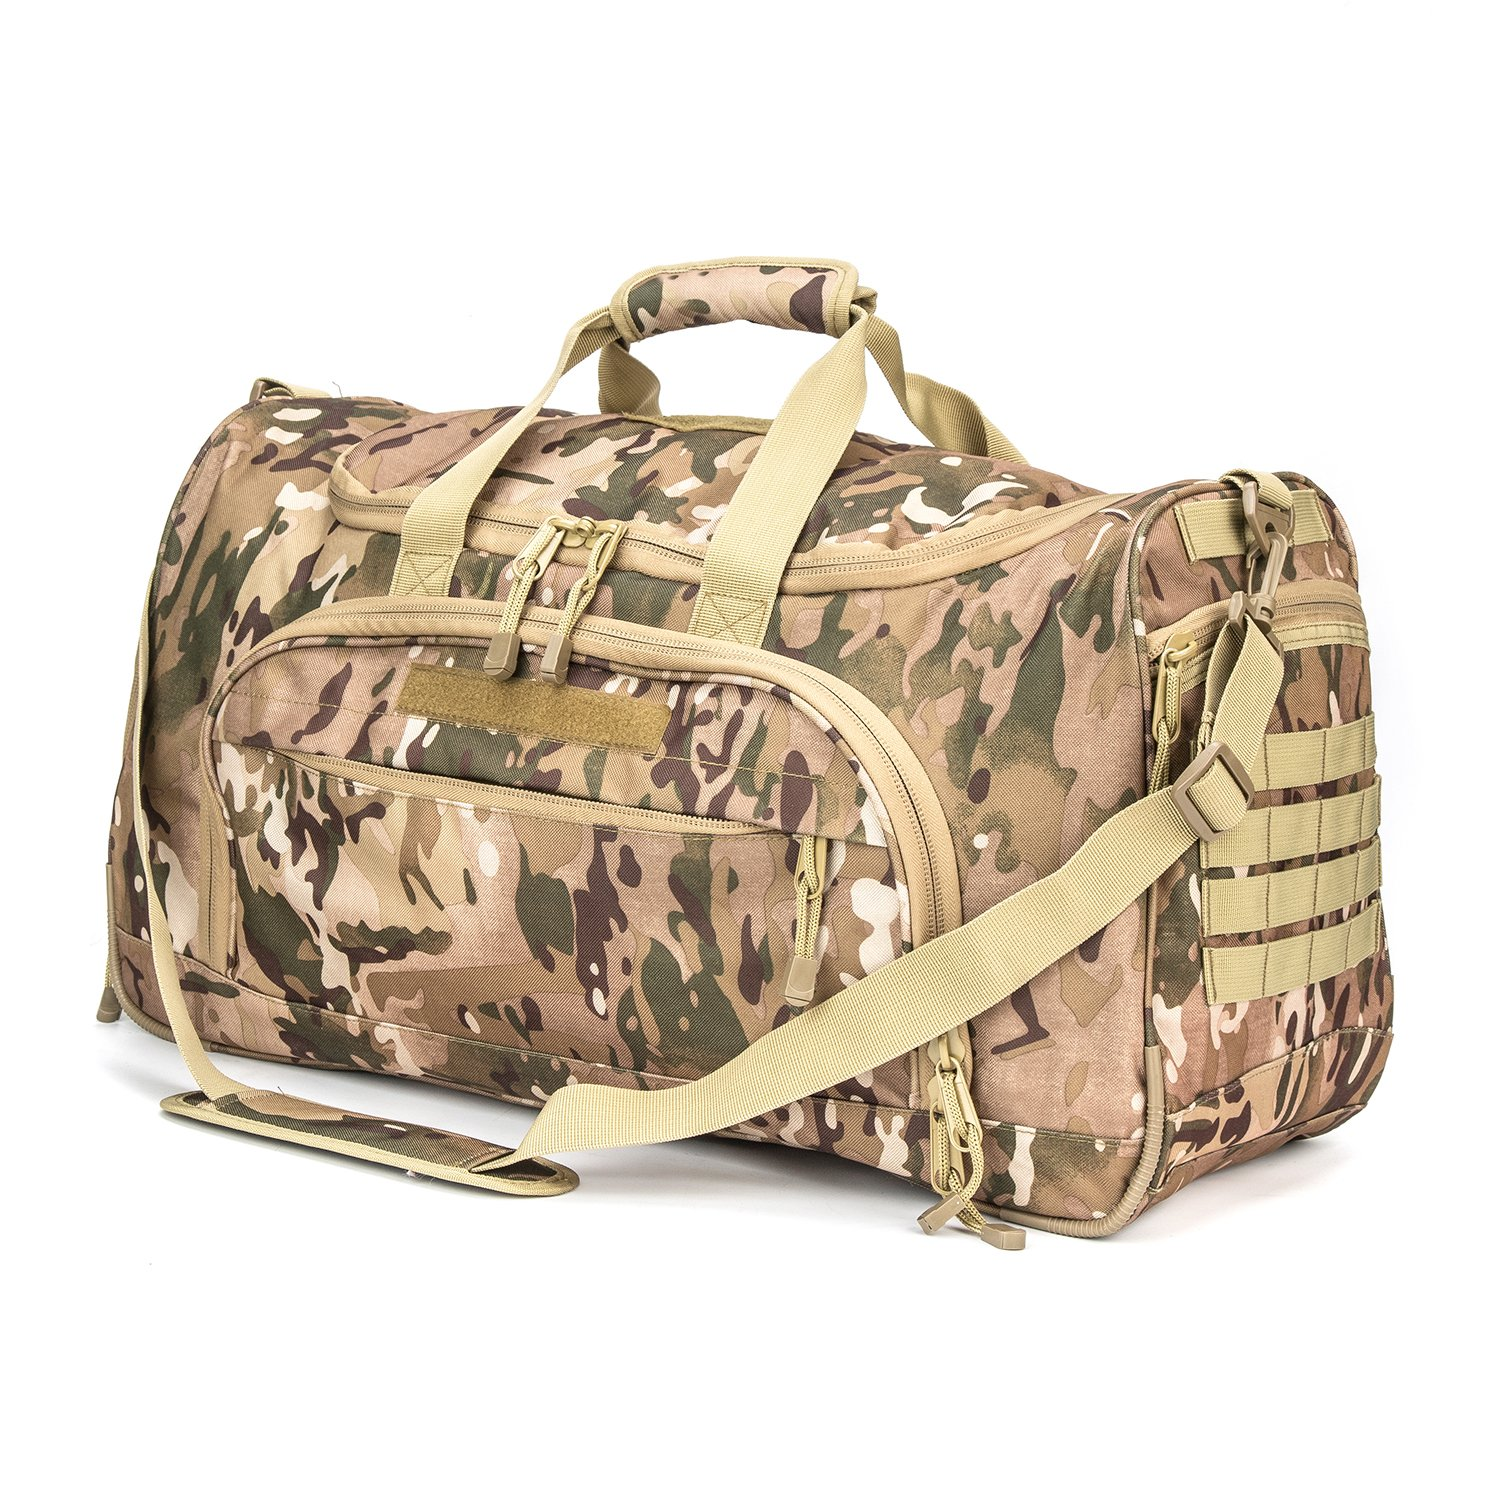 wolfwarriorx Military Tactical Locker Duffle Bag , Luggage Duffle Largeストレージバッグfor旅行、ハワイアン、ハイキングトレッキング B078THWWLK  迷彩